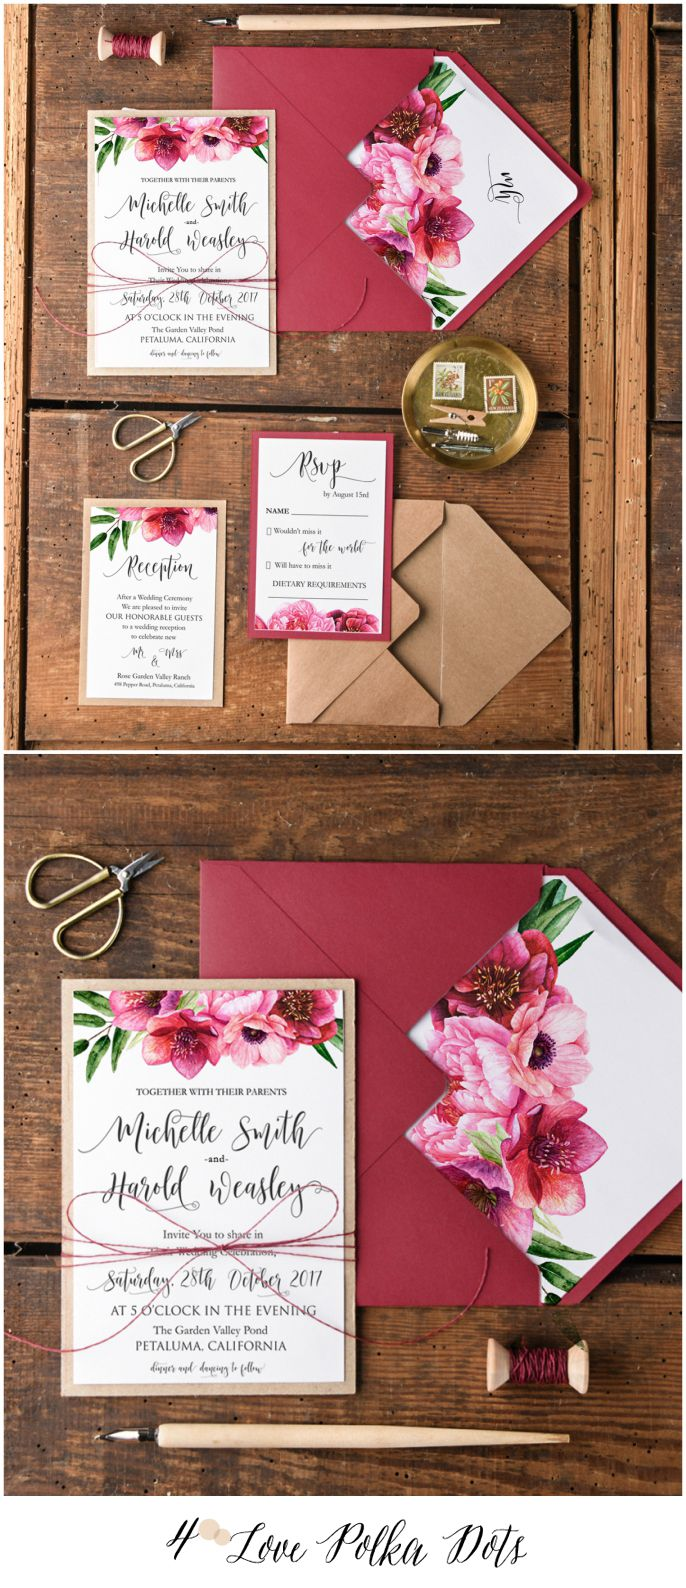 WEDDING INVITATIONS watercolor | Weddingideas, Wedding and Weddings